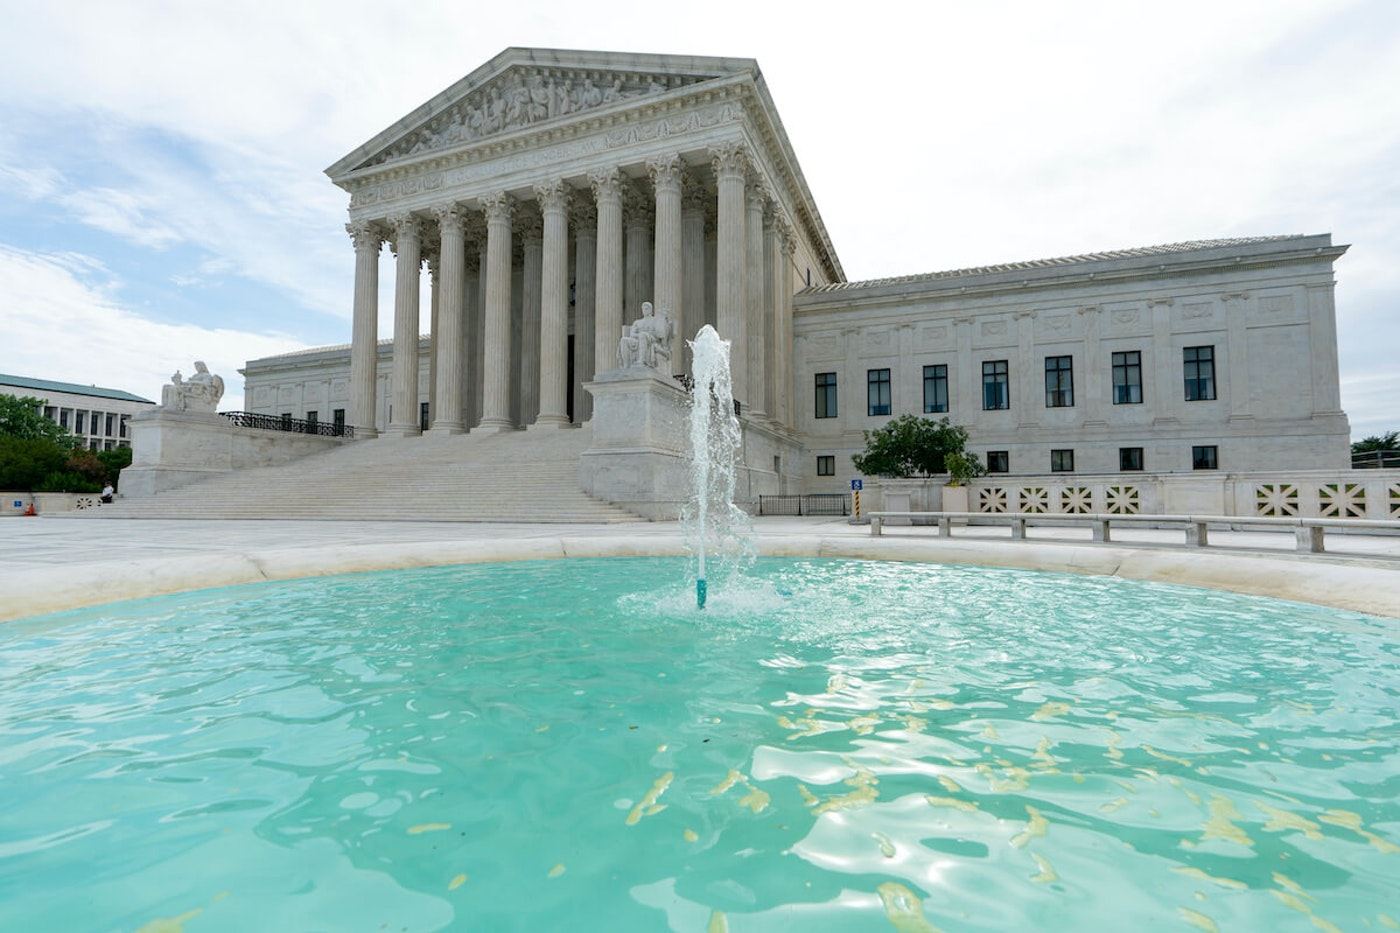 The U.S. Supreme Court is seen in Washington, DC, early Monday, June 15, 2020. (AP Photo/J. Scott Applewhite)